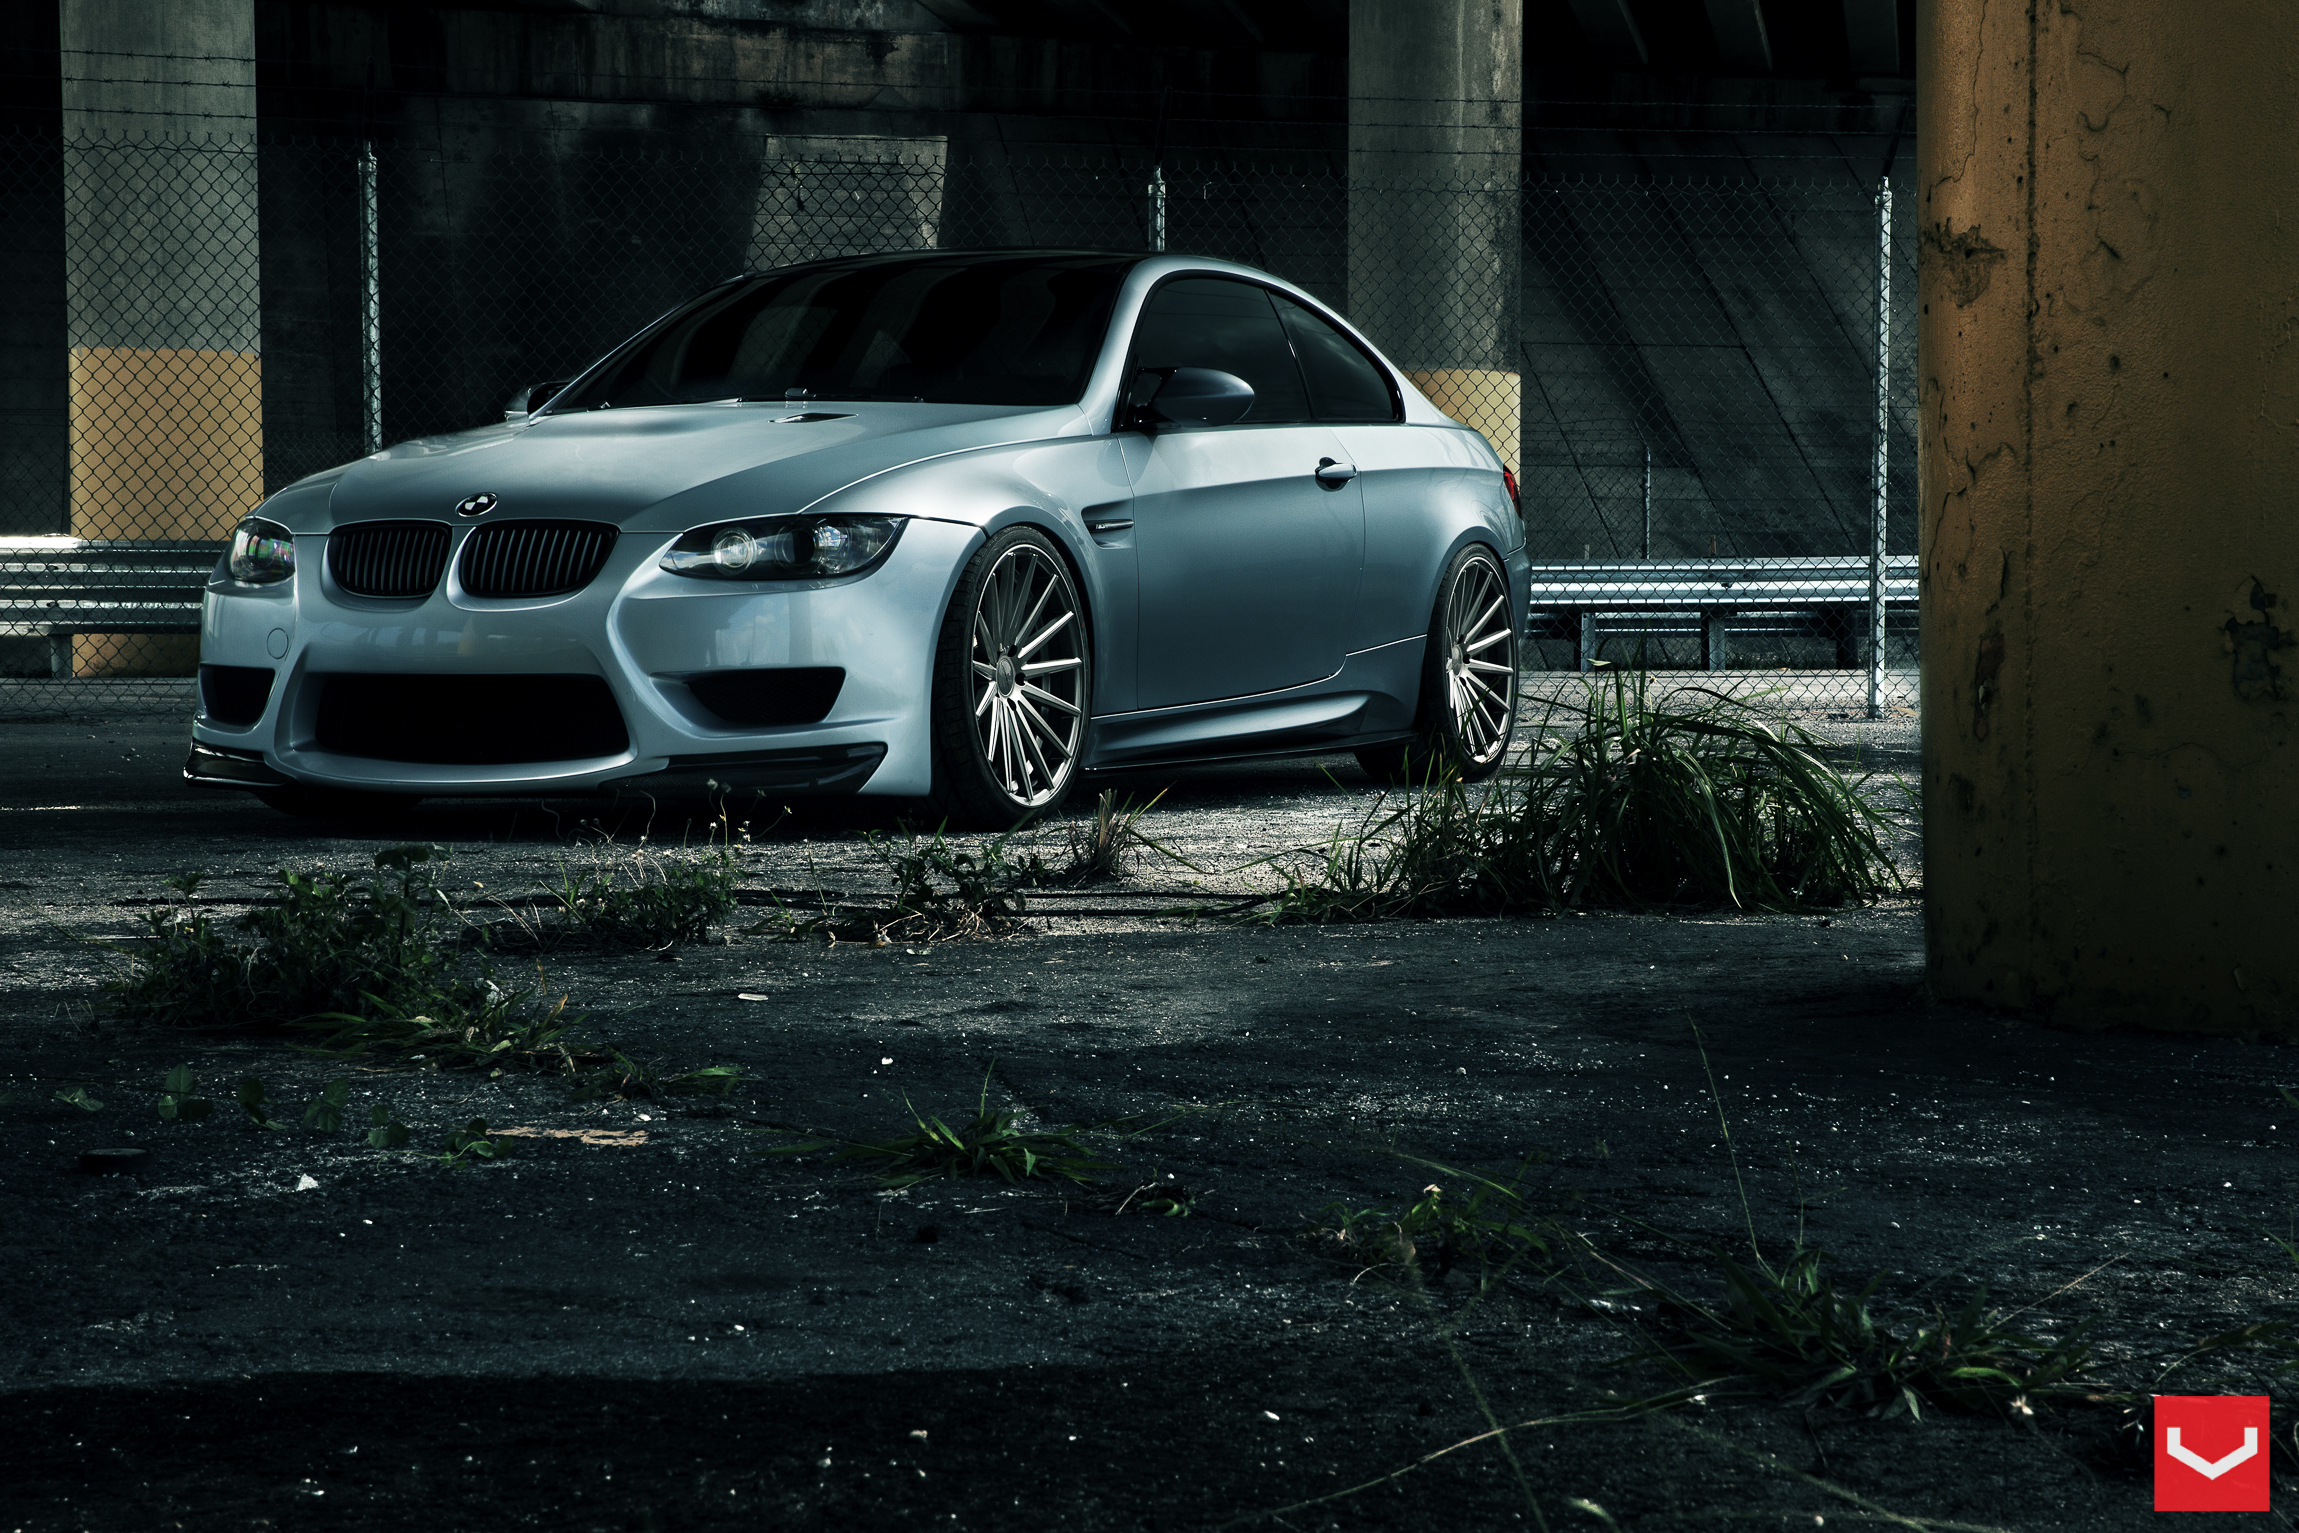 BMW M3 Amuse 2K HD Wallpaper WallpaperEVO Wallpapers 2299x1533